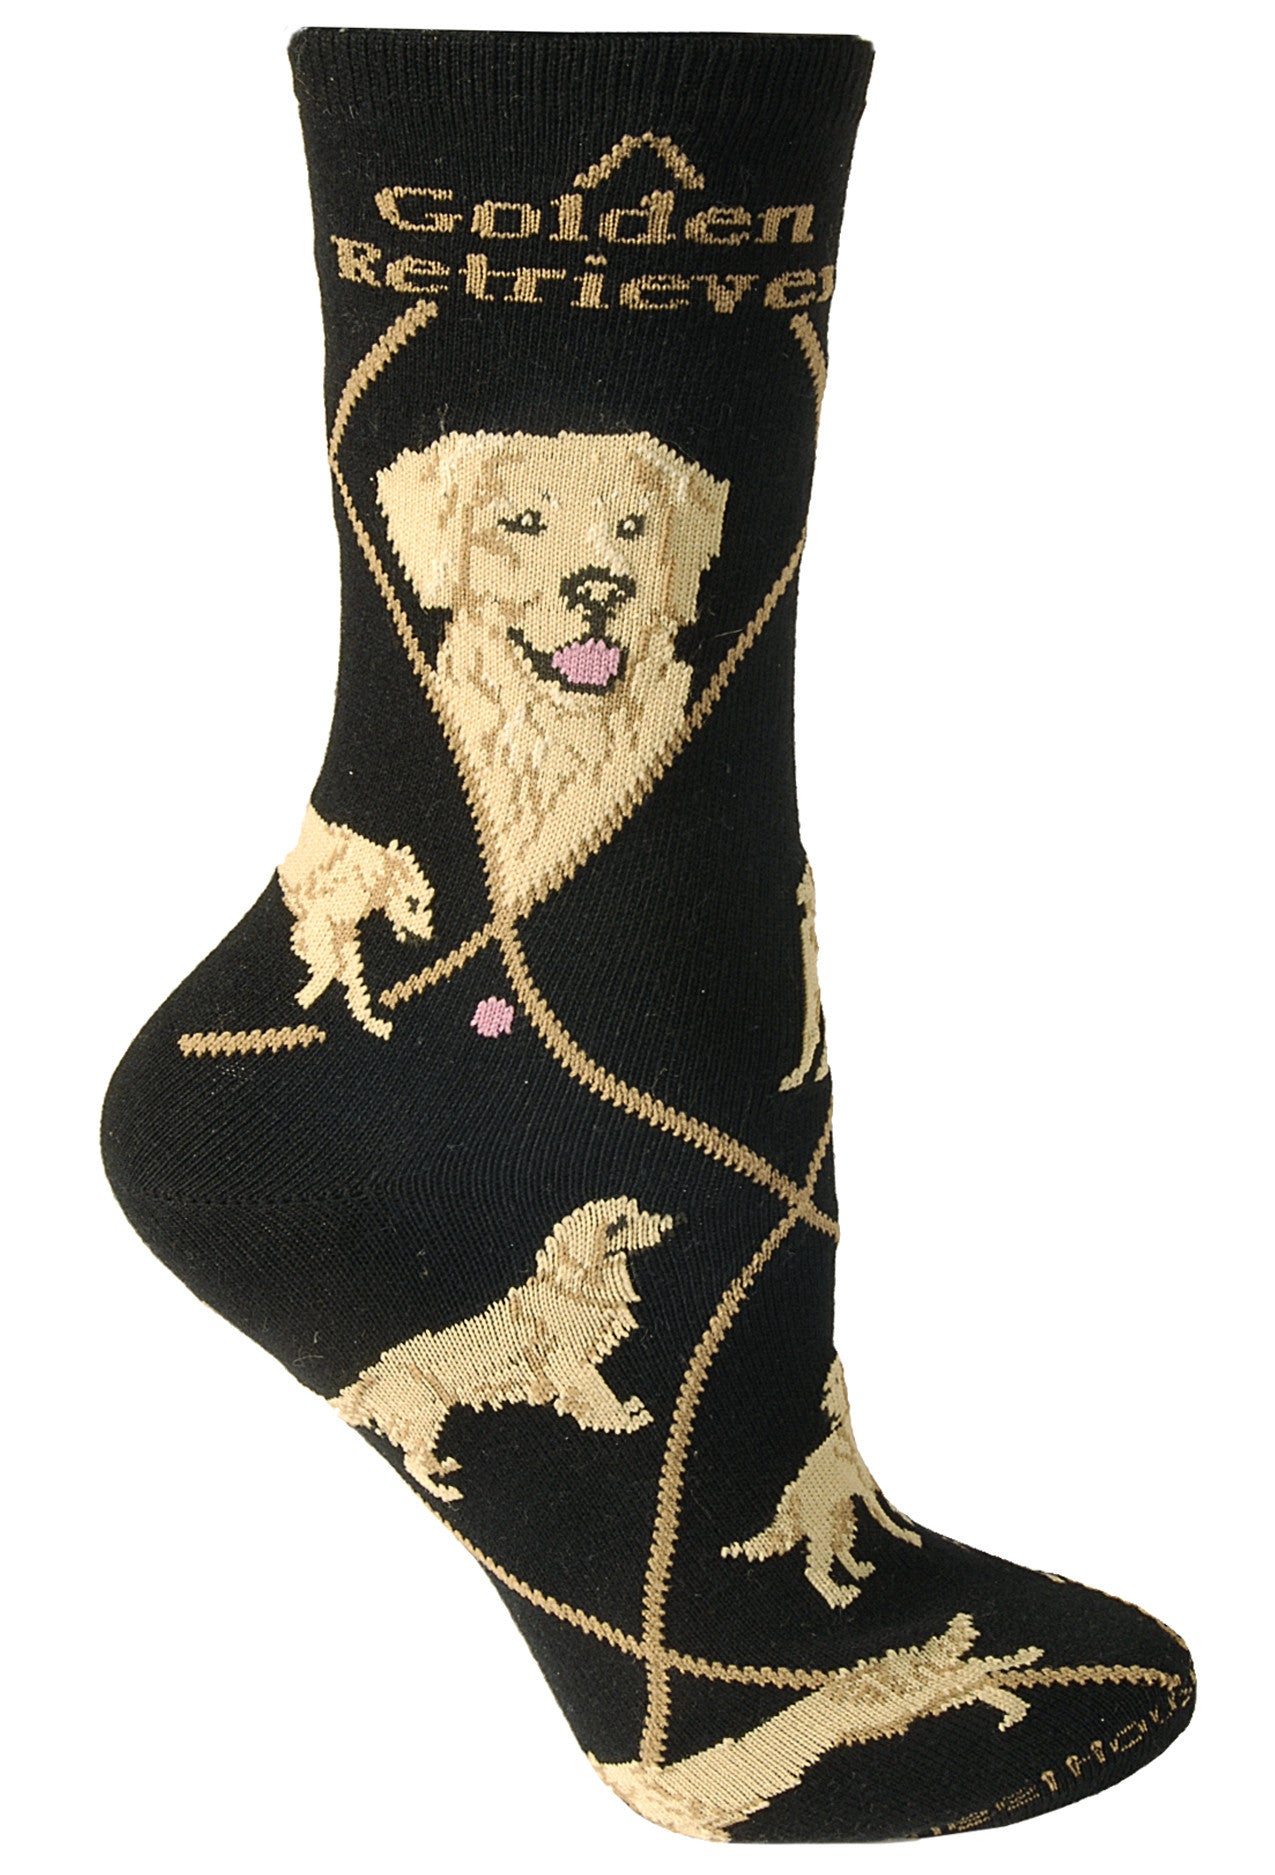 Golden Retriever Crew Socks on Black